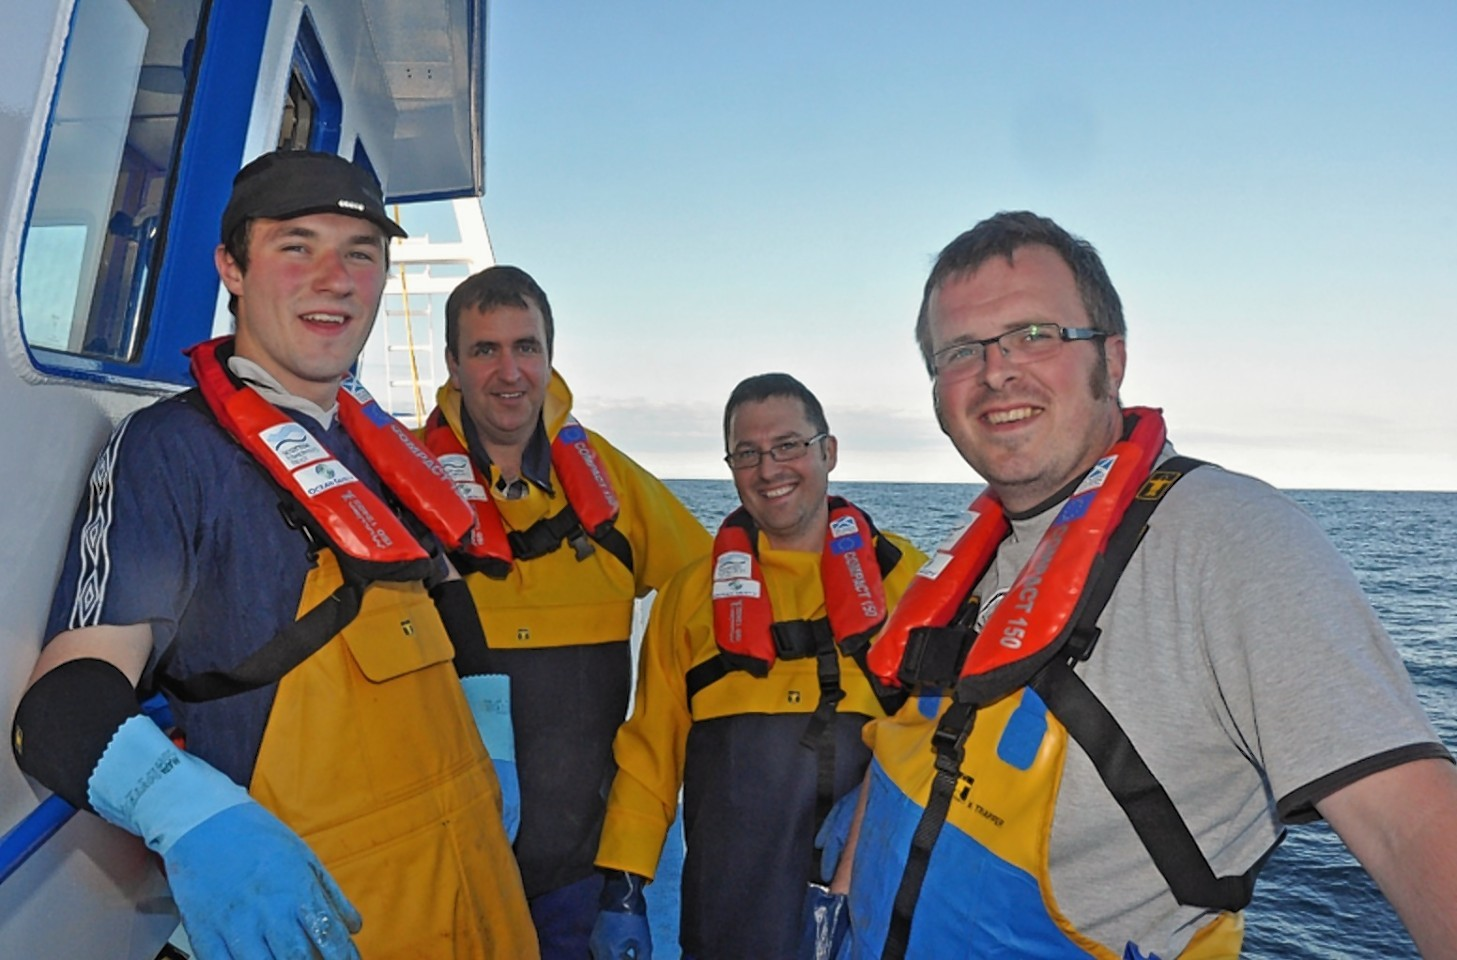 Members of the crew of the Shetland whitefish boat Guardian Angell wearing their PFDs